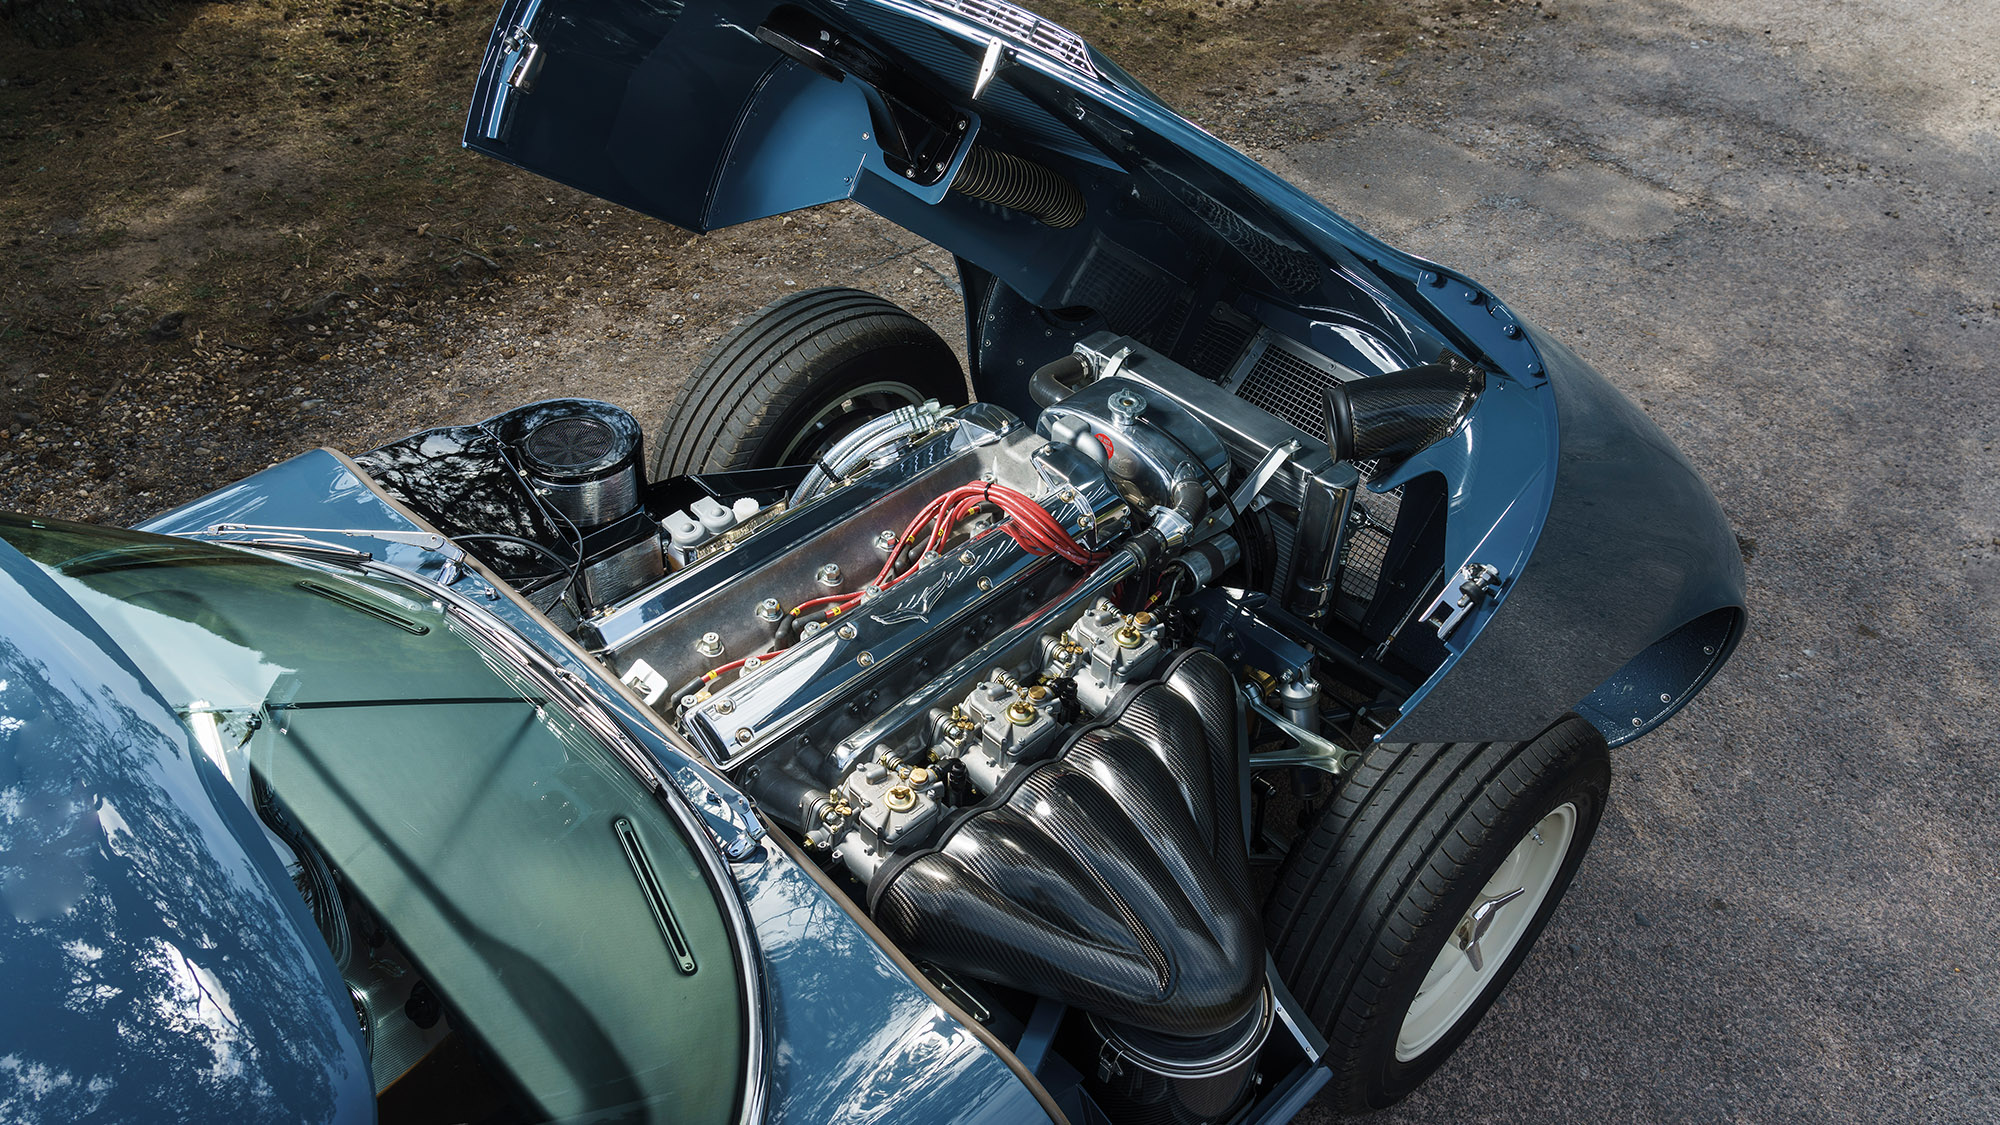 View of engine with the bonnet open of the 2020 Eagle E-type Lightweight GT